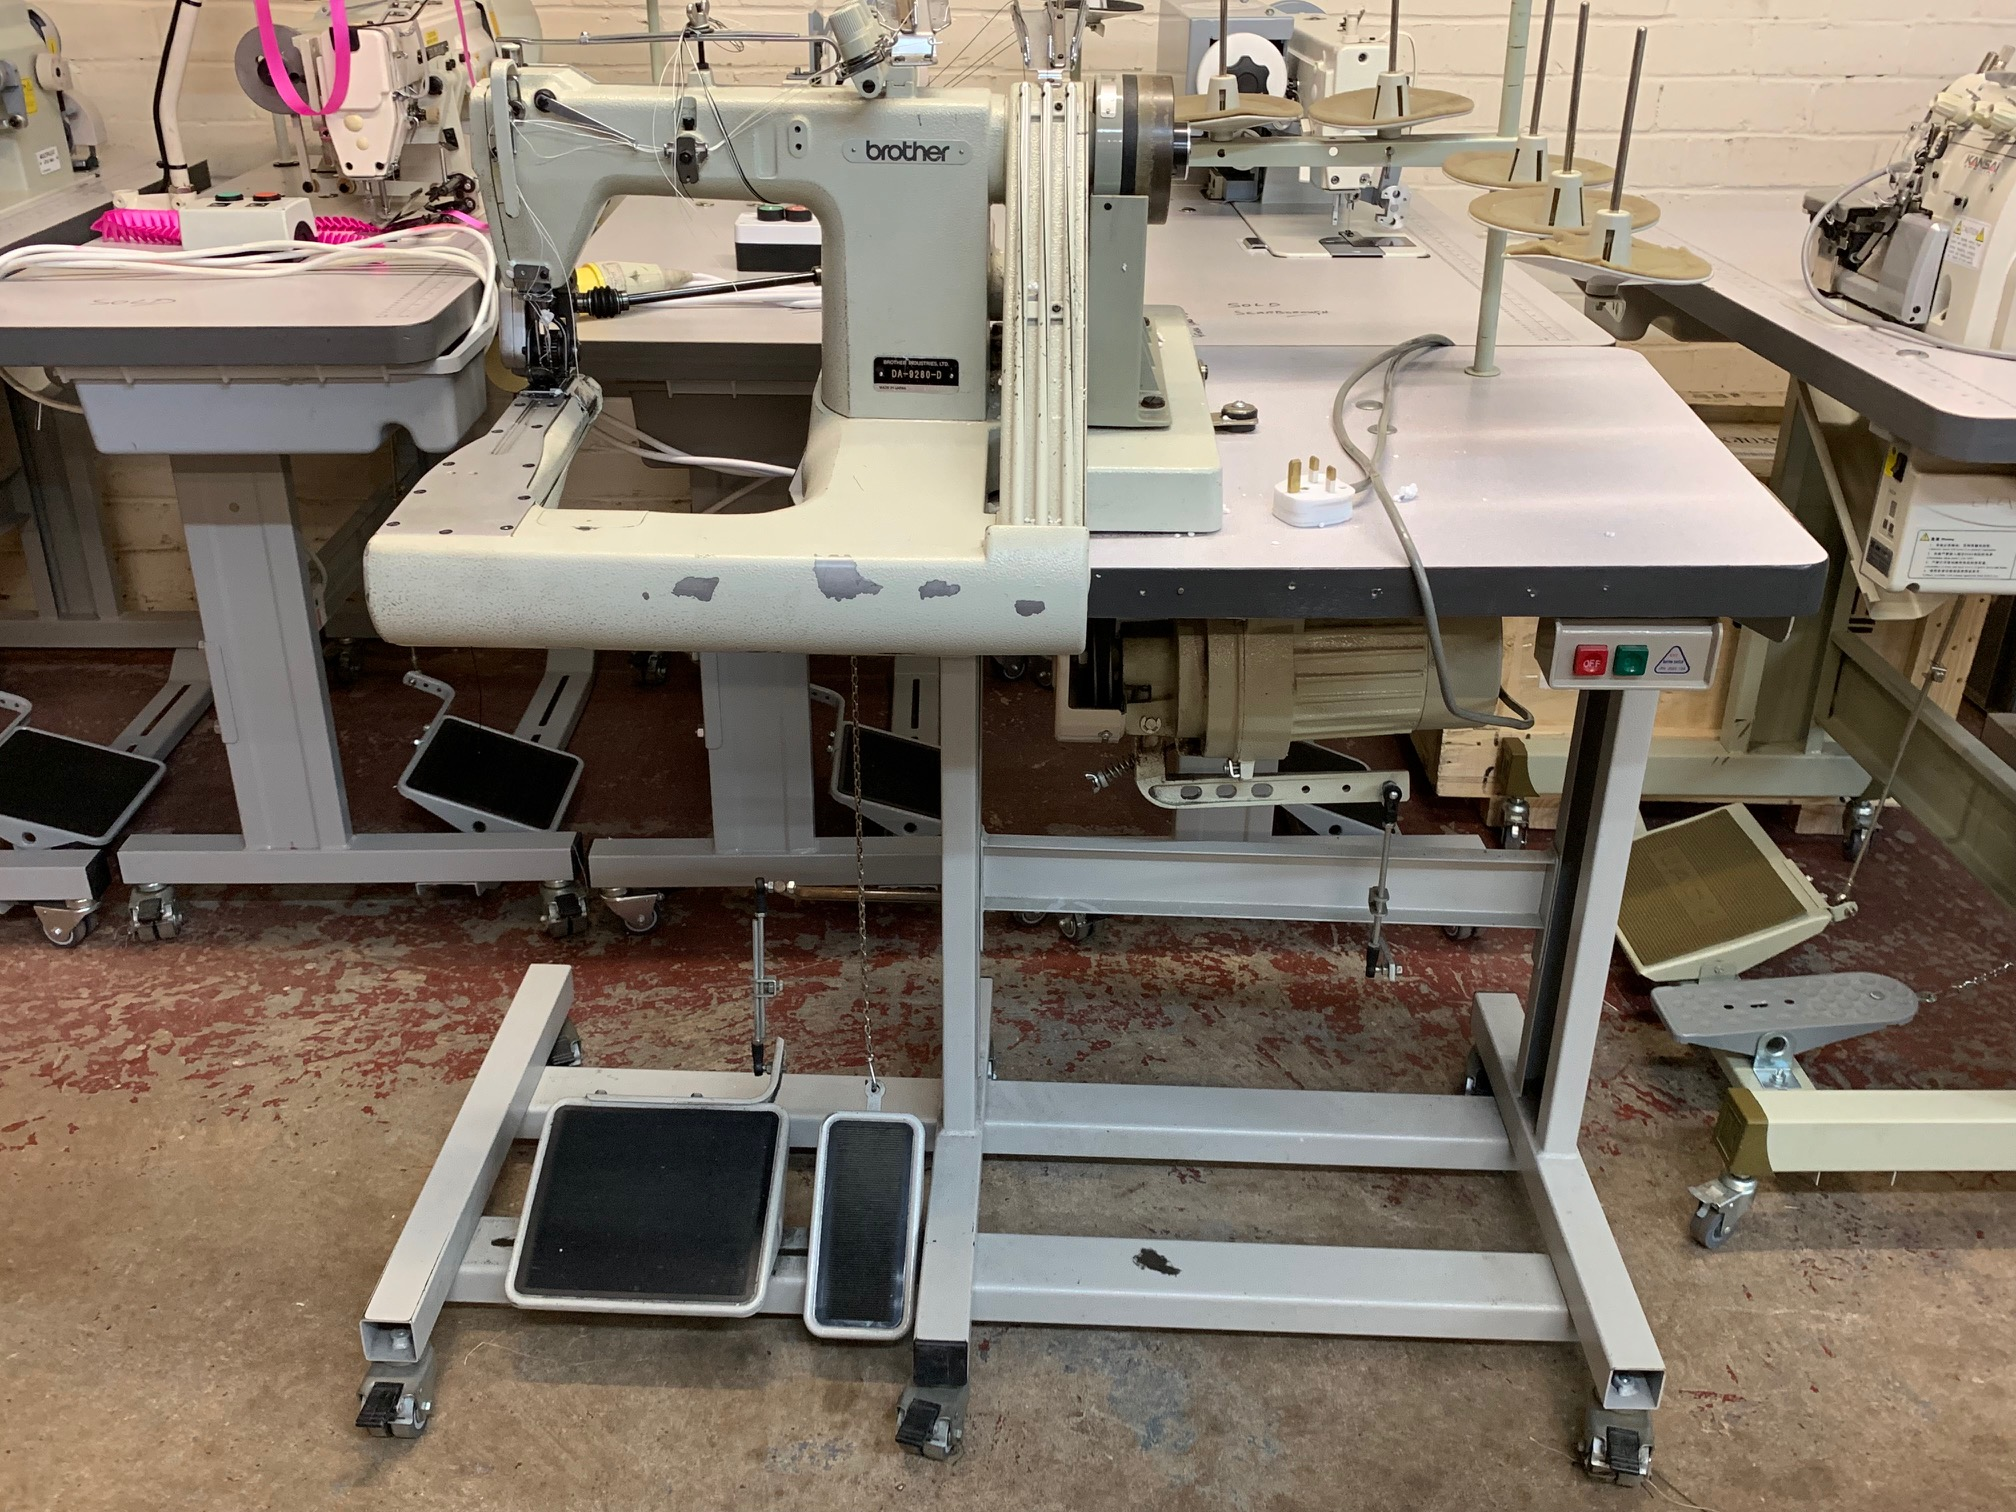 Brother DA-9280-D feed-off-the-arm lap seam machine